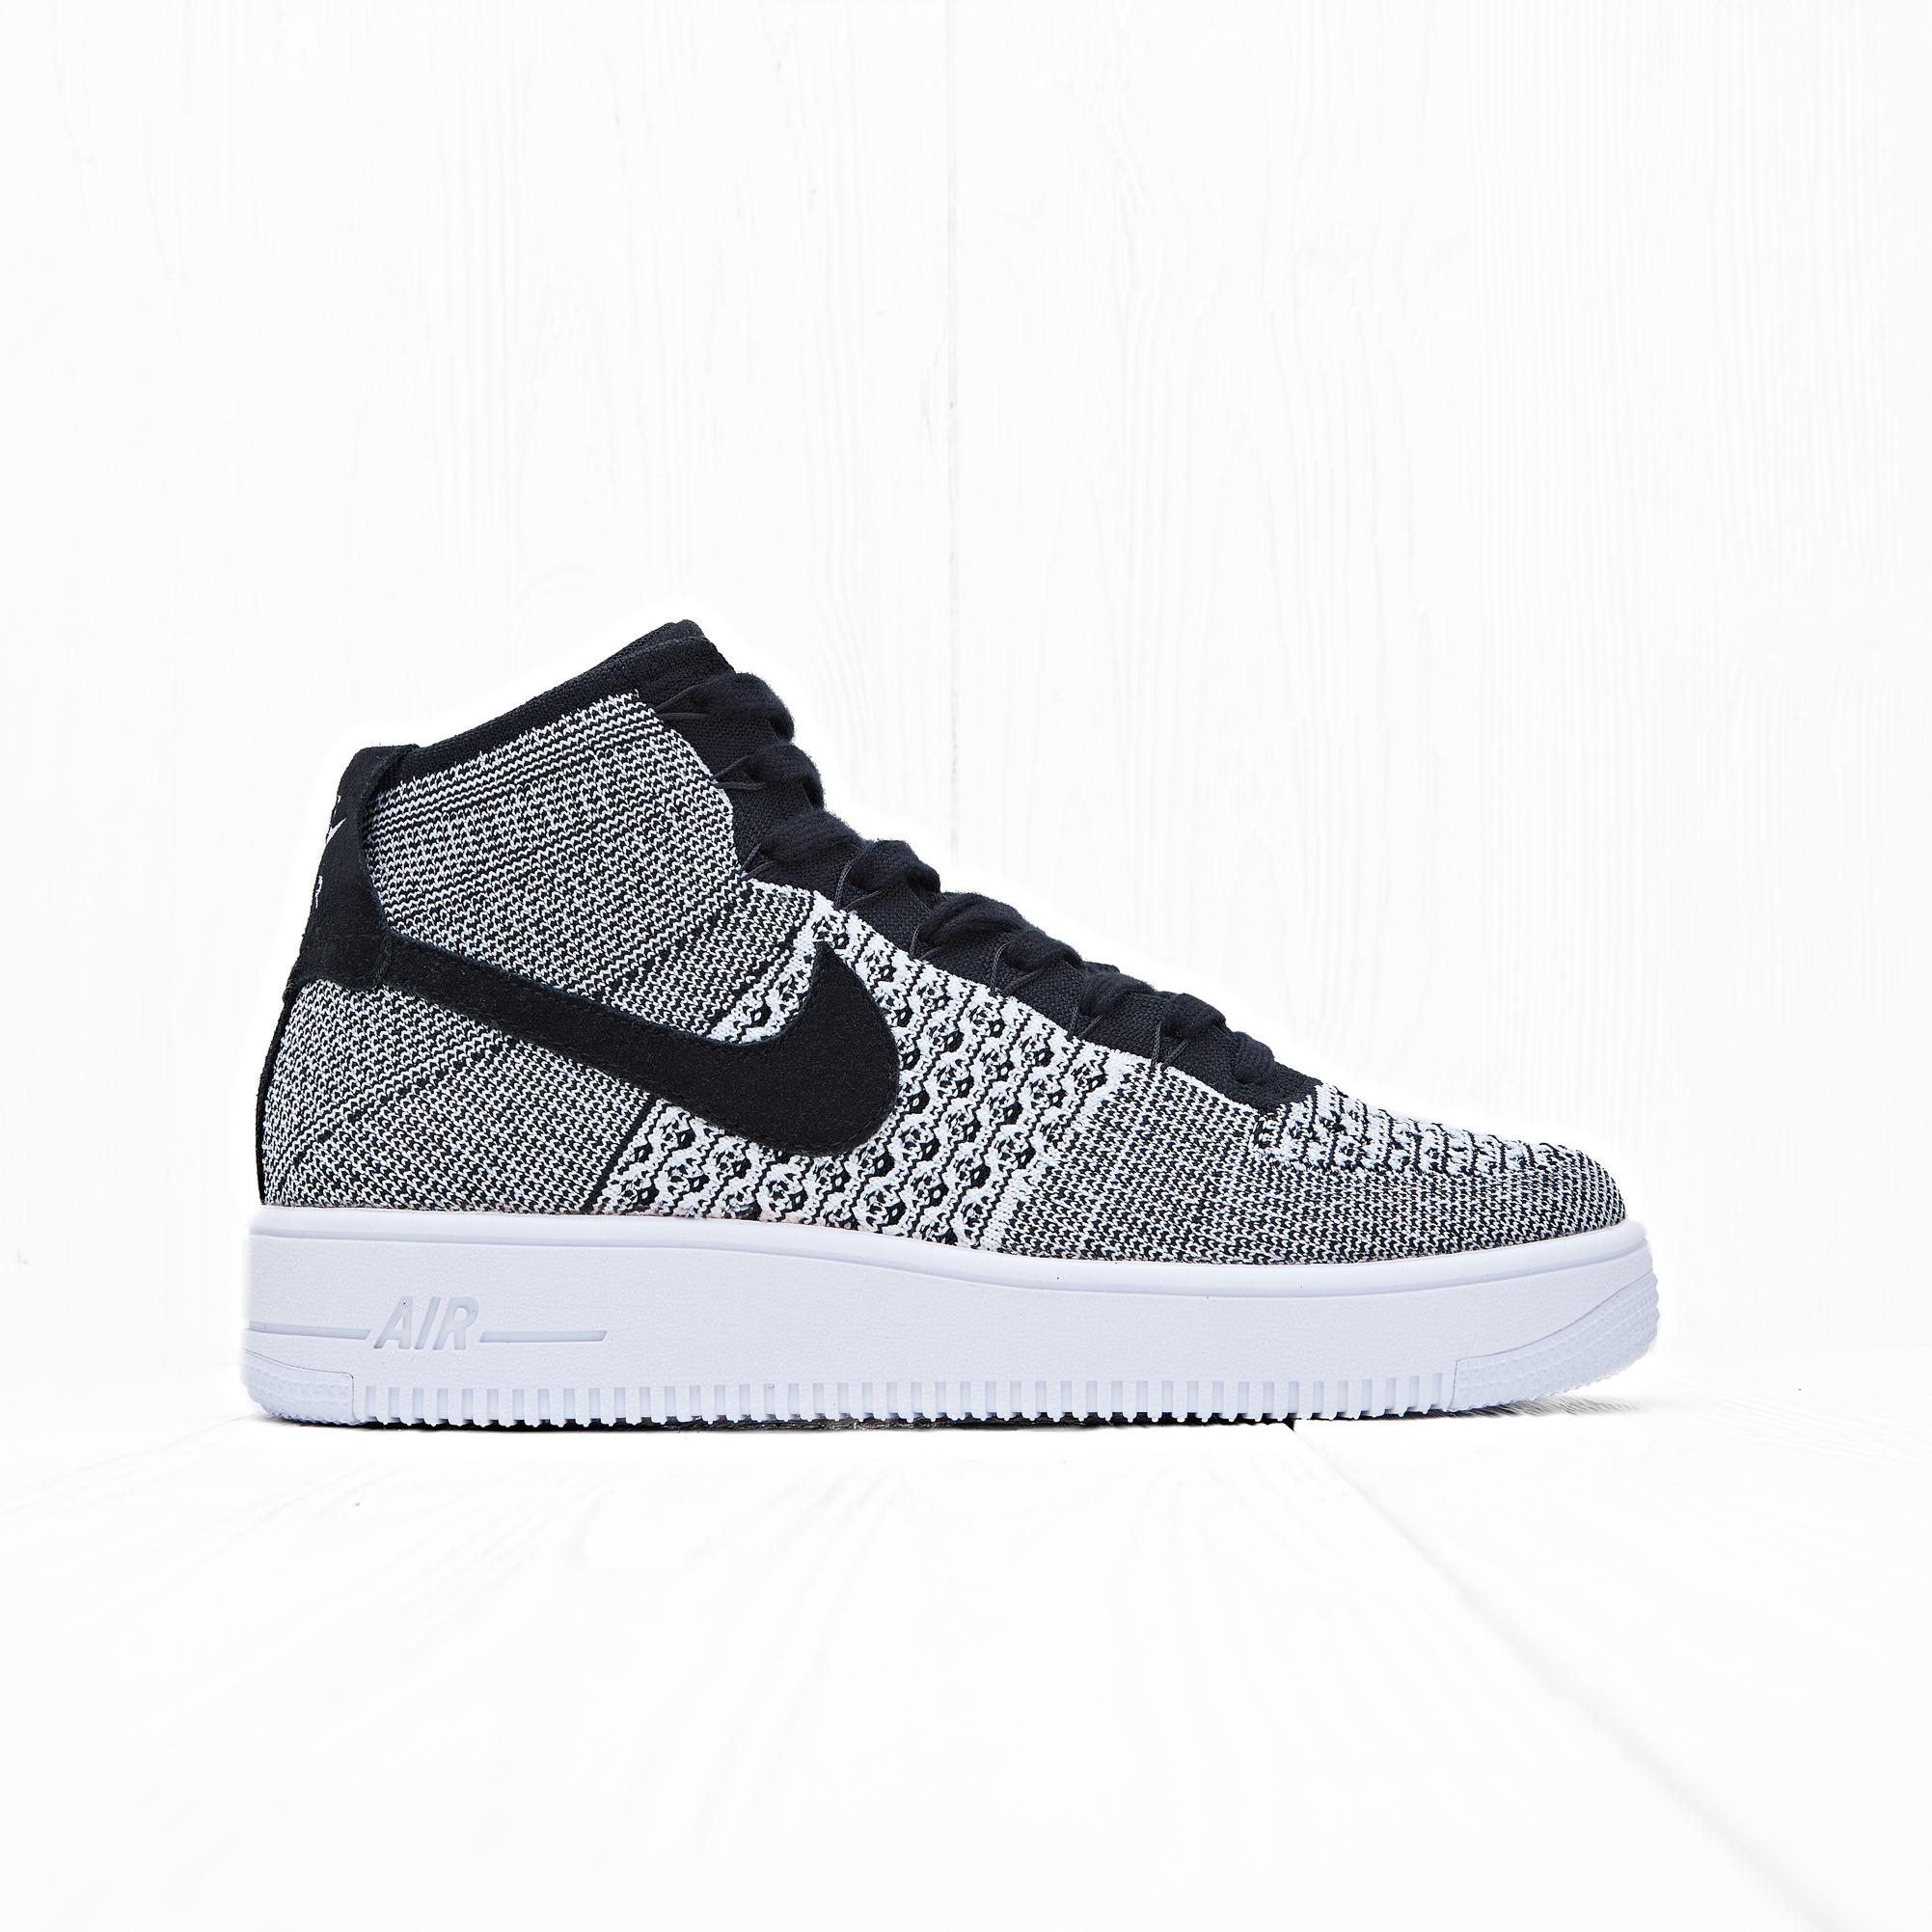 Кроссовки Nike AIR FORCE 1 ULTRA FLYKNIT MID Black/Black-White